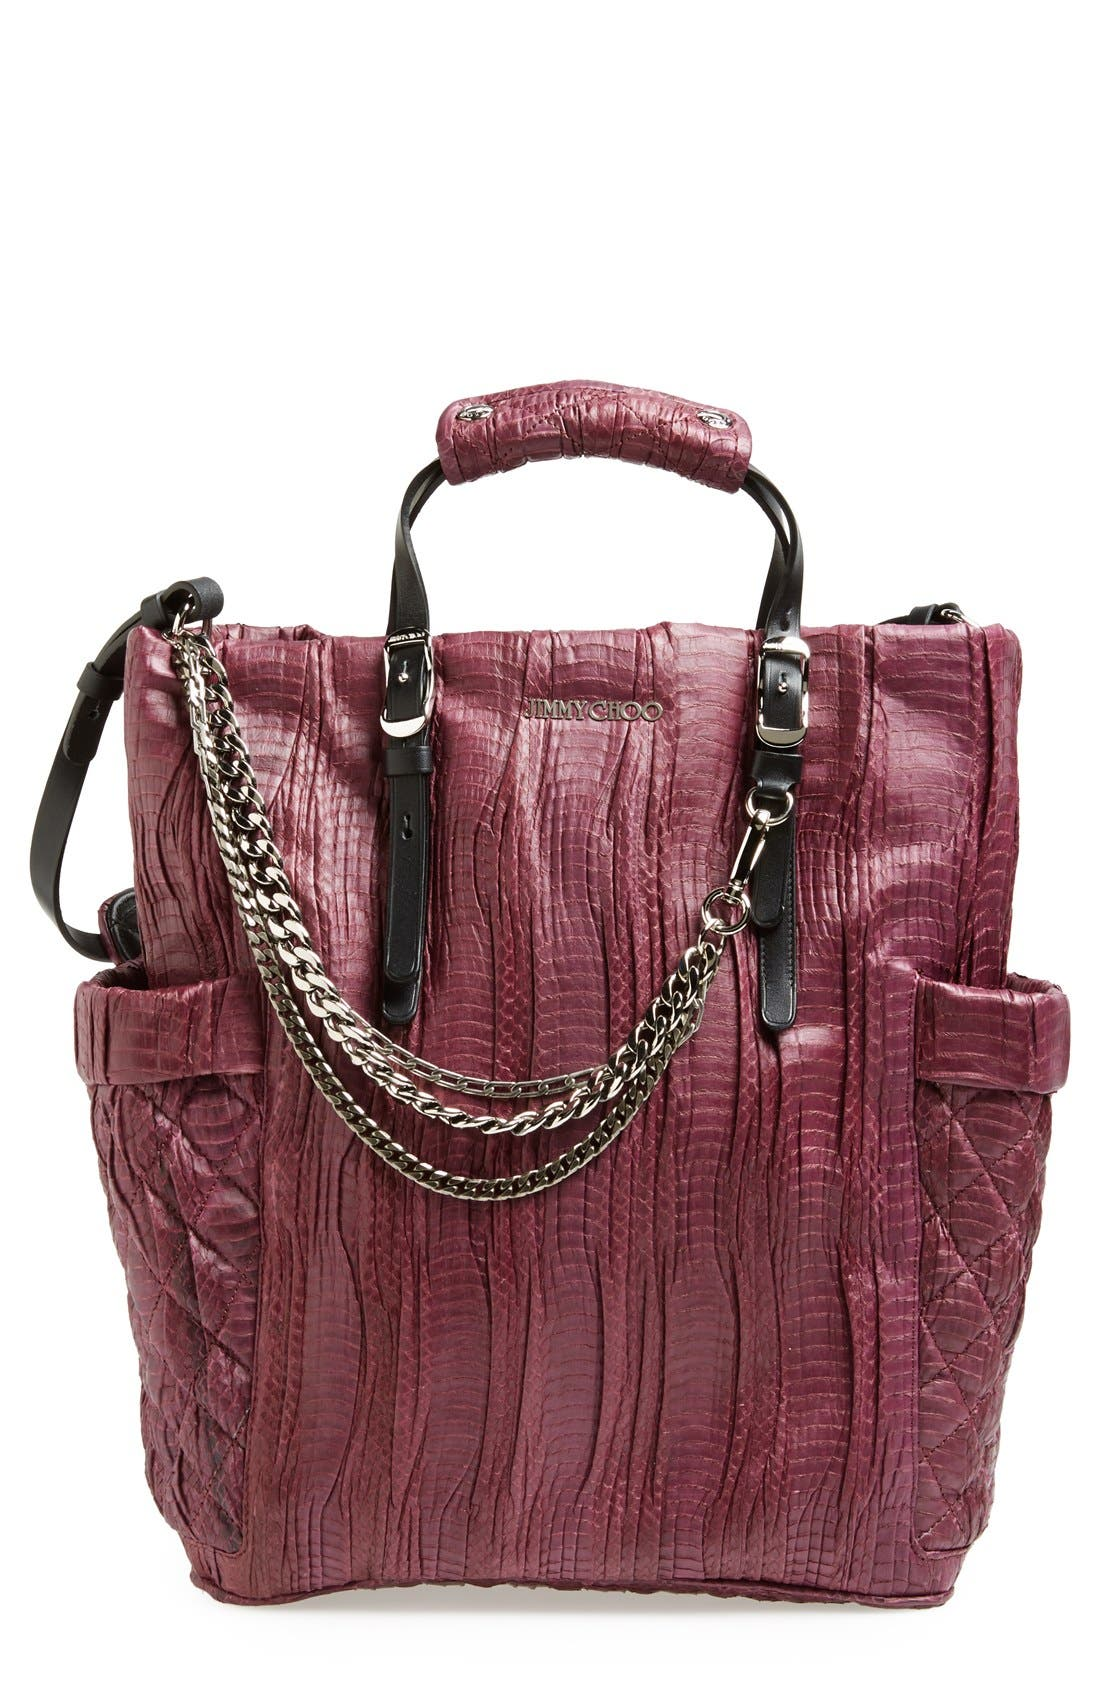 Alternate Image 1 Selected - Jimmy Choo 'Blare' Genuine Snakeskin Tote